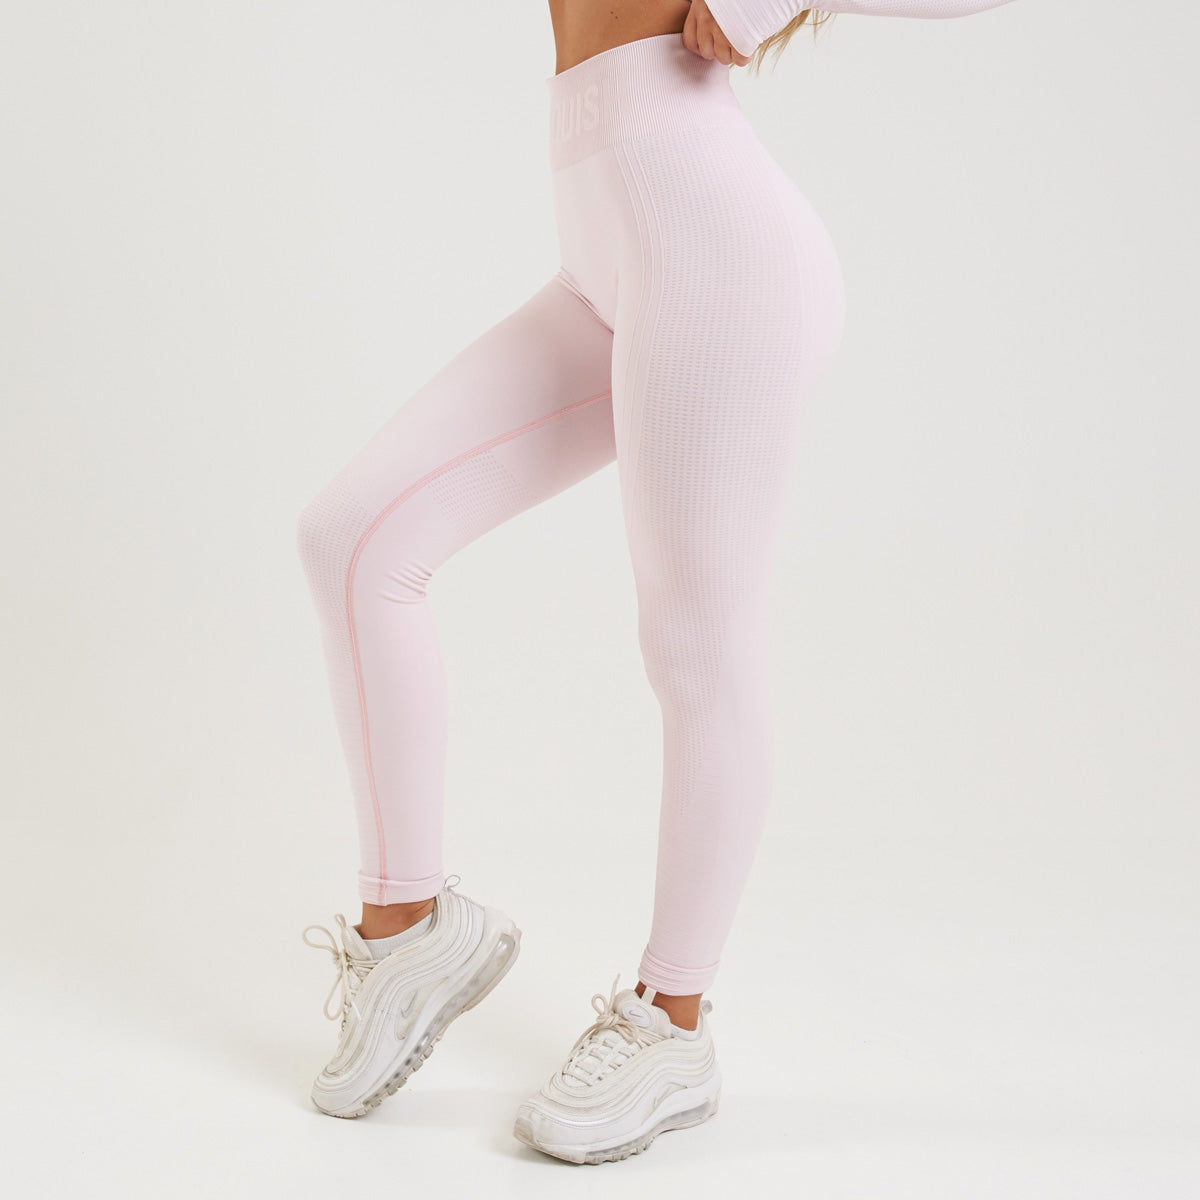 Vanquish Bright Women's Pink Seamless Leggings